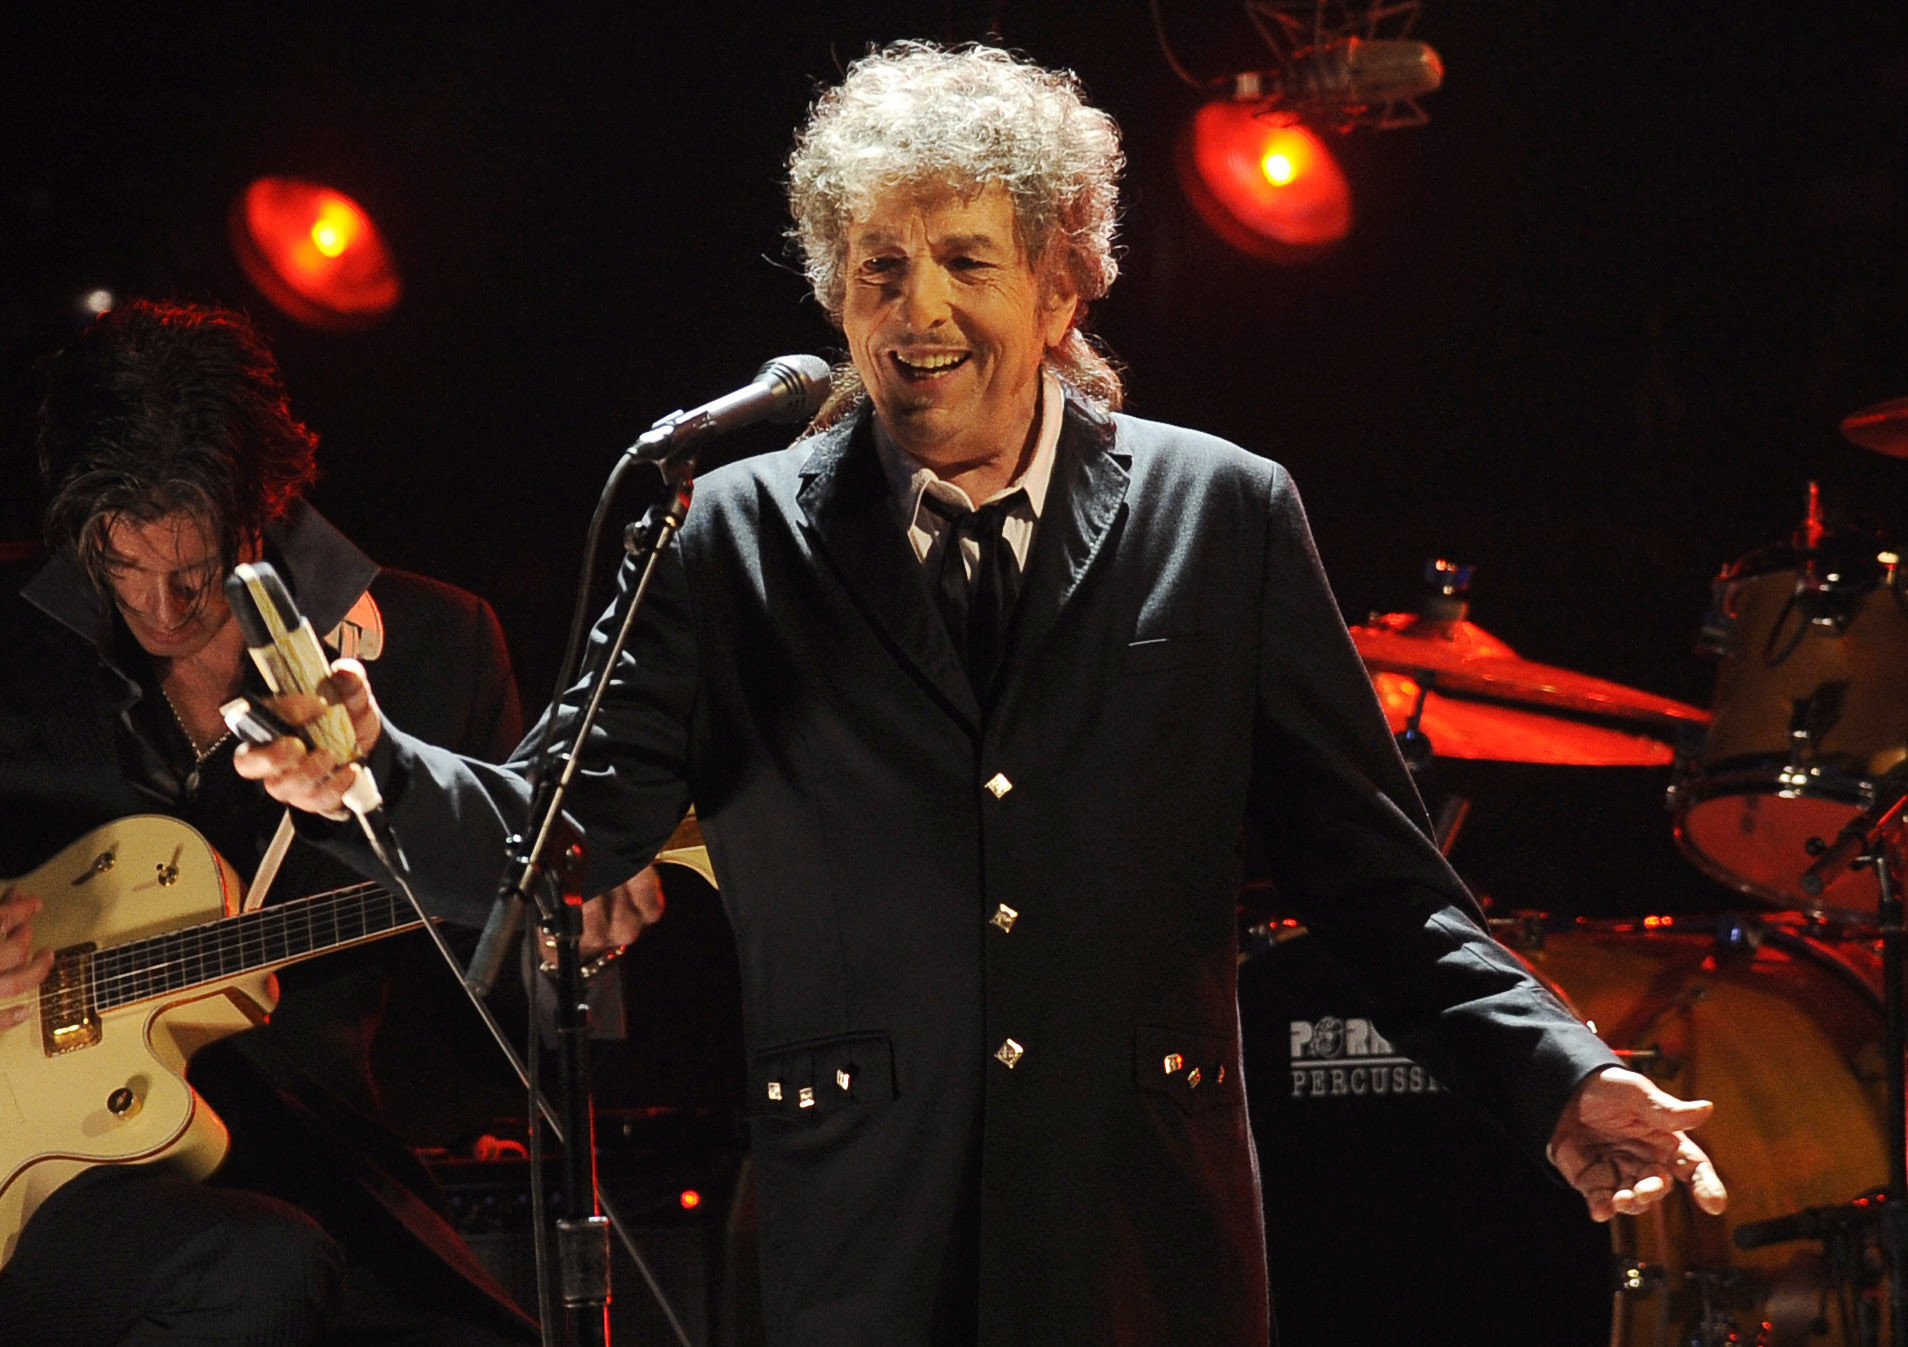 Bob Dylan to play first concert at new DePaul hoops arena in Chicago